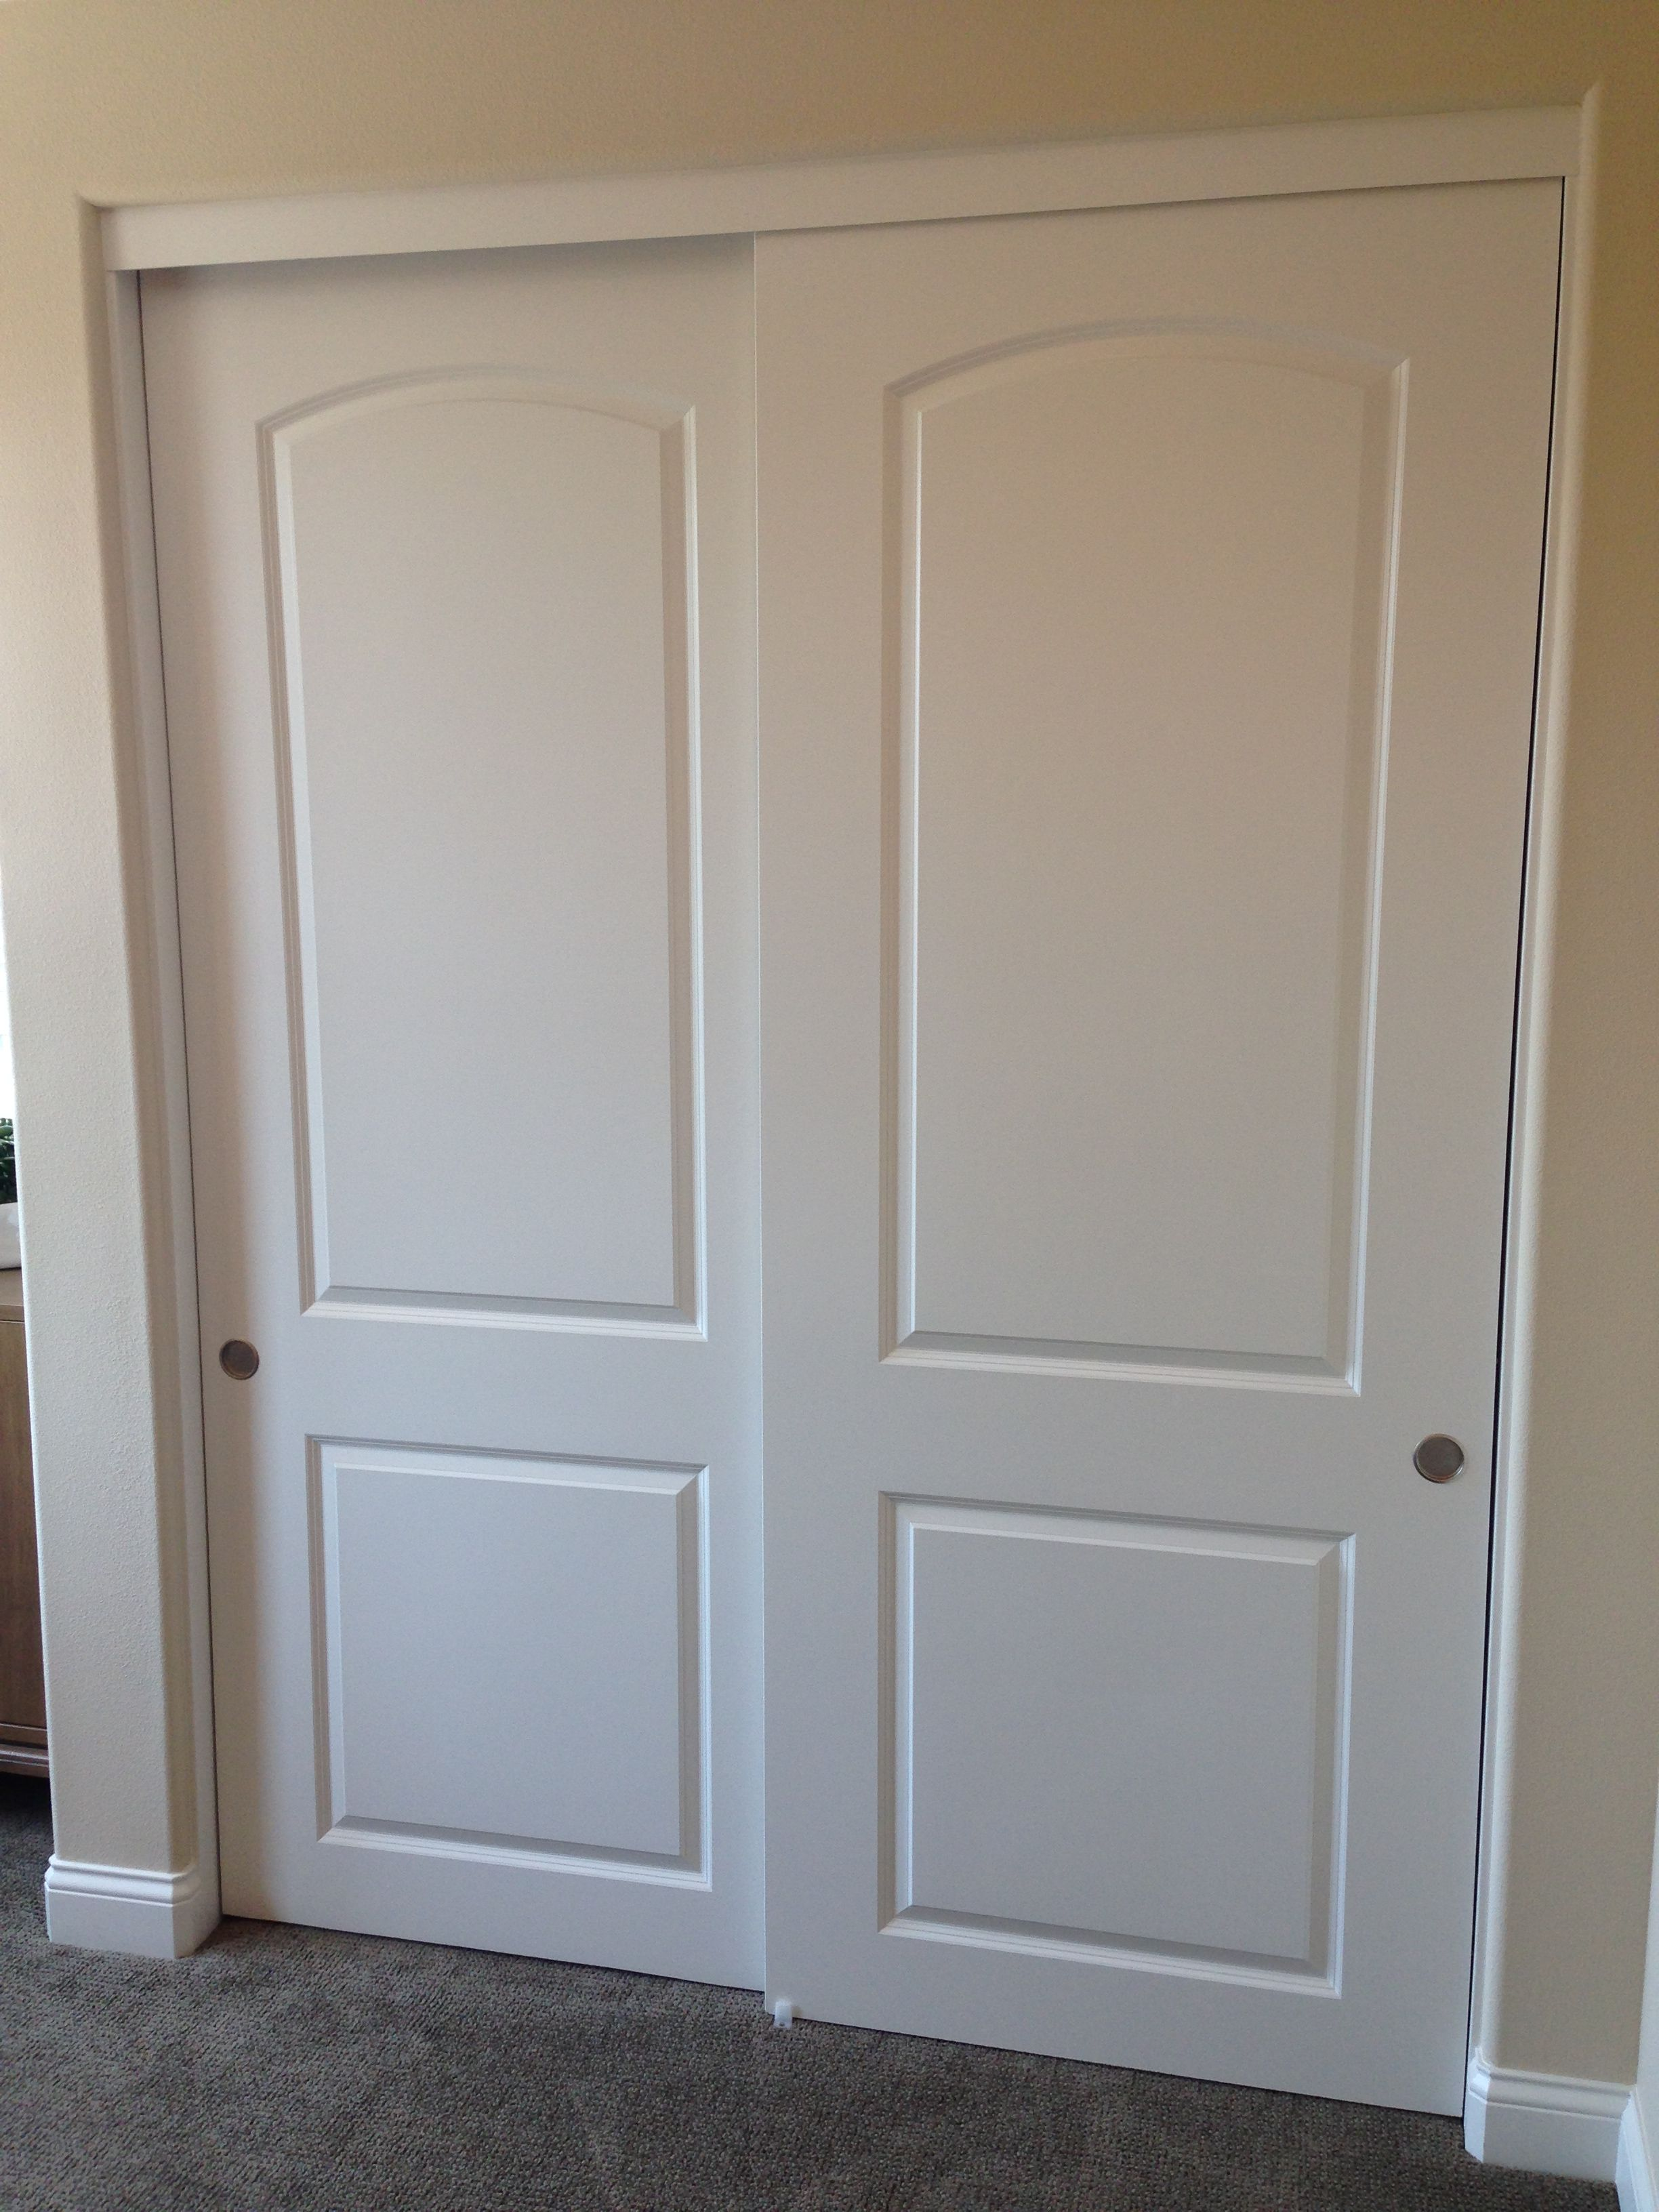 Beautiful 2 Panel / 2 Track Hollow Core MDF Bypass (Sliding) Closet Doors With J